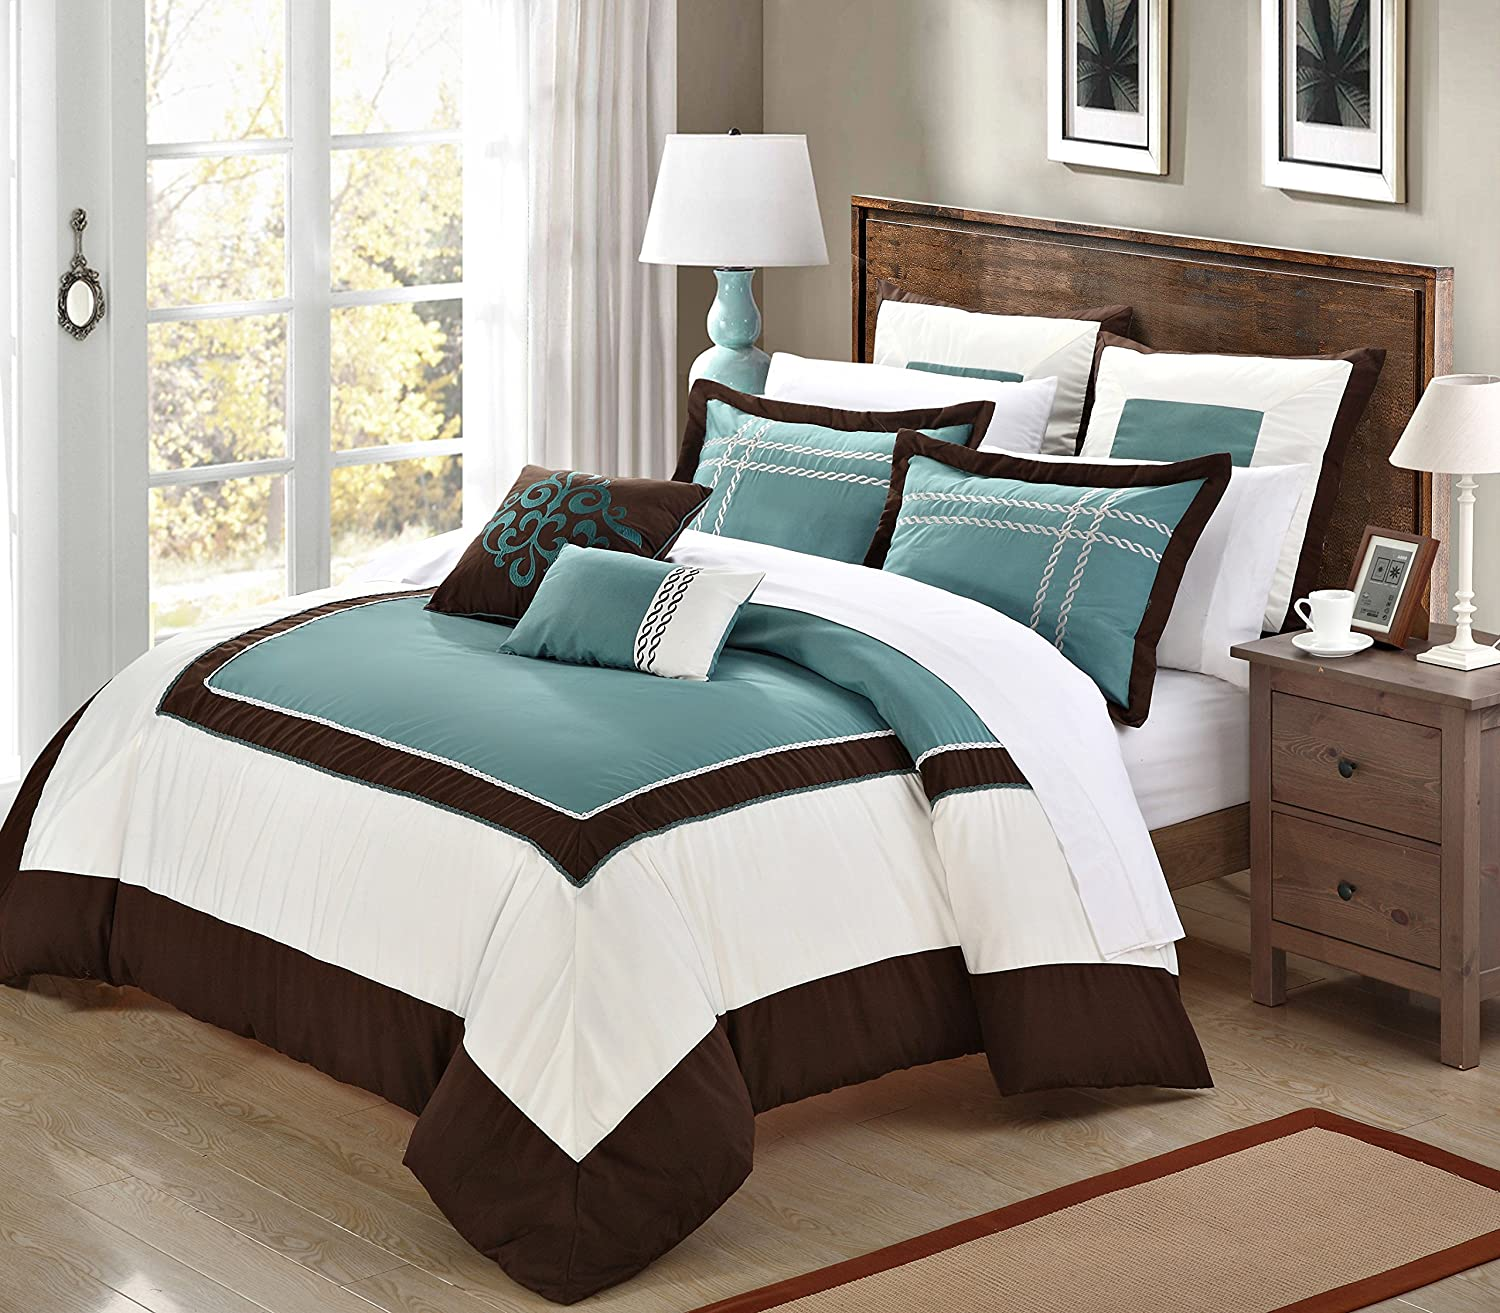 Blue bedding comforter sets archives bedroom decor ideas for Green and brown bedroom designs